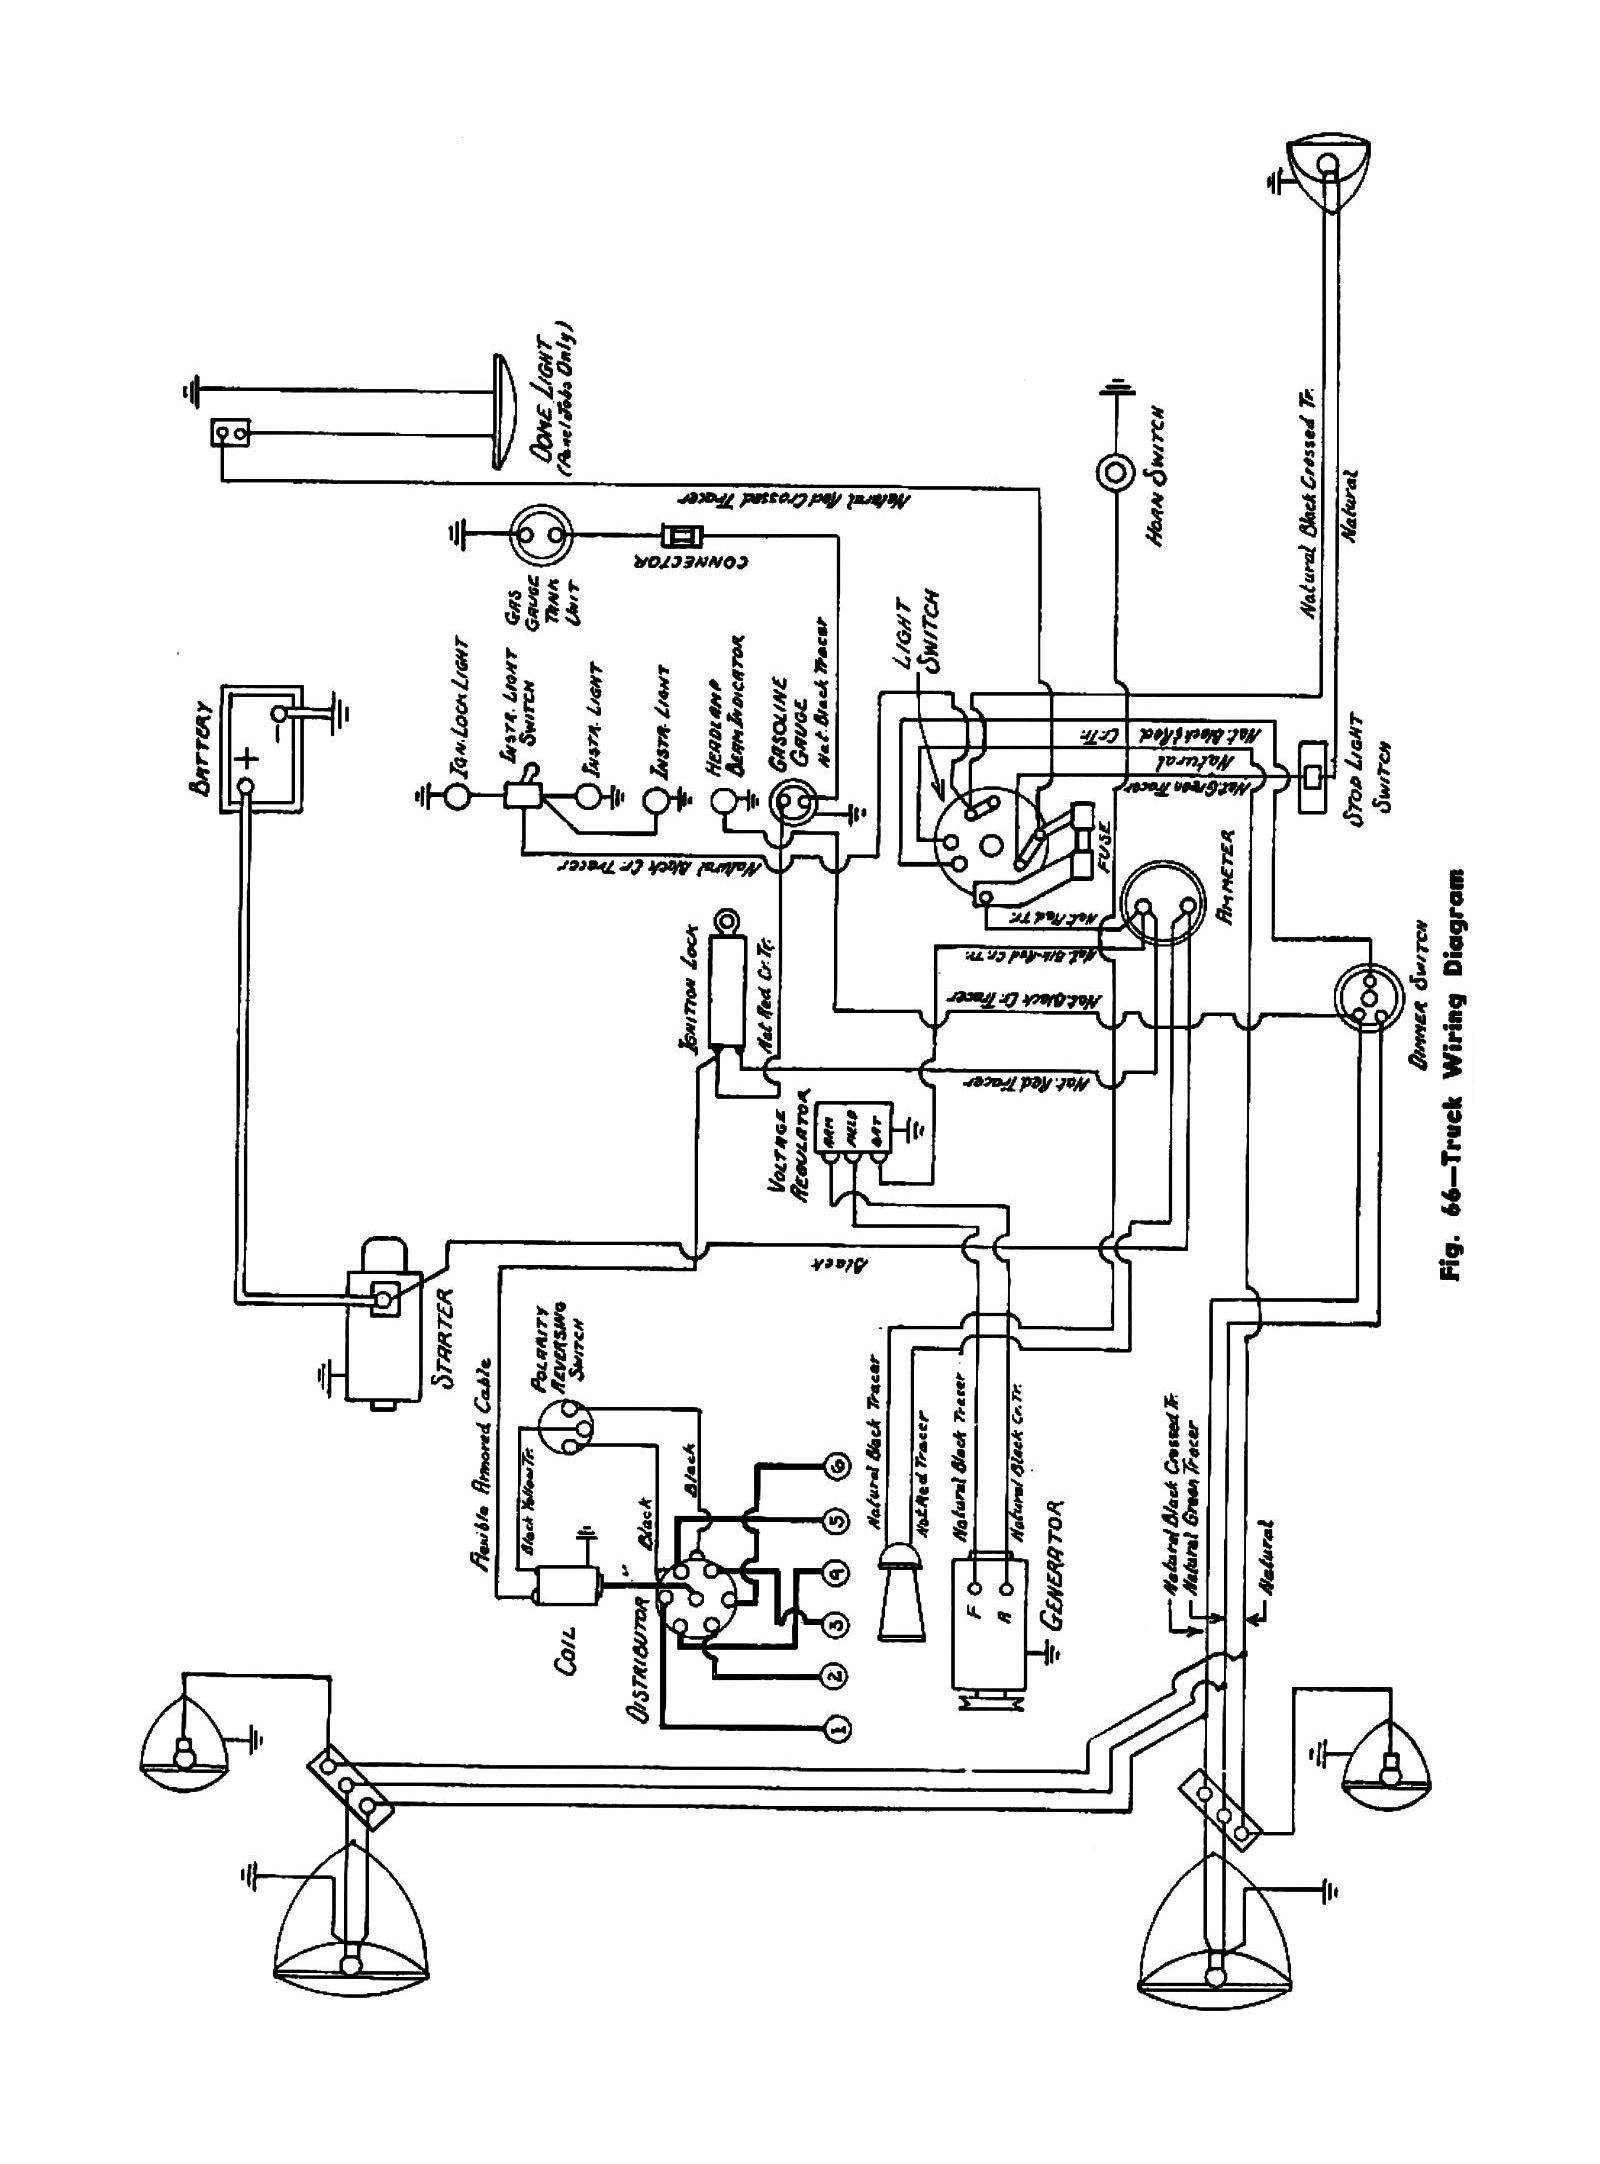 1949 Gmc Truck Wiring | Wiring Diagram | Article Review Old Gmc Pickup Wiring Diagrams on gmc truck fuse diagrams, gmc pickup parts diagram, gmc general trucks wiring-diagram, gmc pickup accessories, gmc radio wiring diagram, gmc savana wiring diagrams, gmc pickup owners manuals, willys pickup wiring diagrams, gmc jimmy wiring diagrams, nissan pickup wiring diagrams, gmc bronco, gmc electrical diagrams, gmc pickup seats, gmc pickup drawings, 1990 gmc wiring diagrams, gmc typhoon wiring diagrams, 1996 gmc wiring diagrams, toyota pickup wiring diagrams, ford pickup wiring diagrams, gmc brake light wiring diagram,